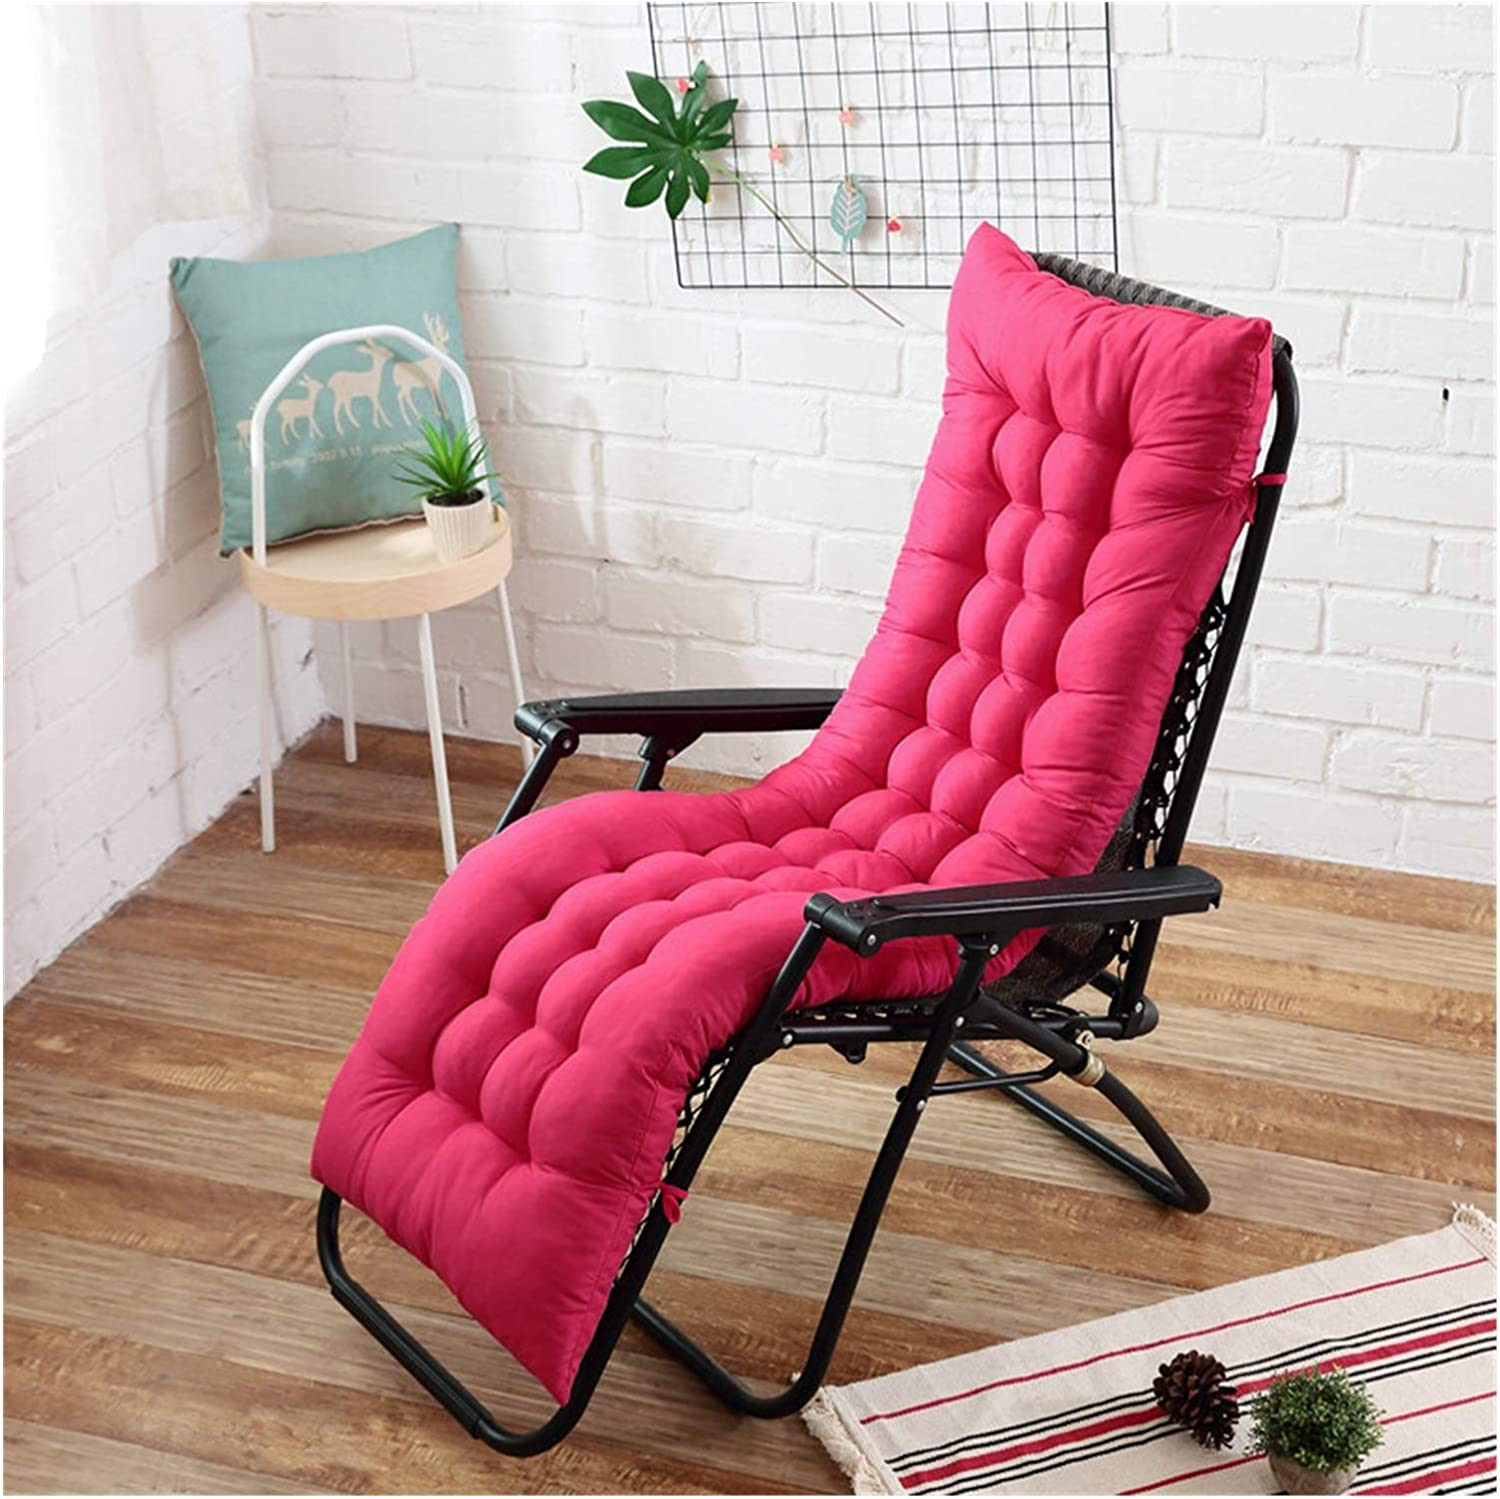 Popular 67% OFF of fixed price brand ZCPCS Solid Color Cushion Soft Seat Chair Cus Comfortable Office